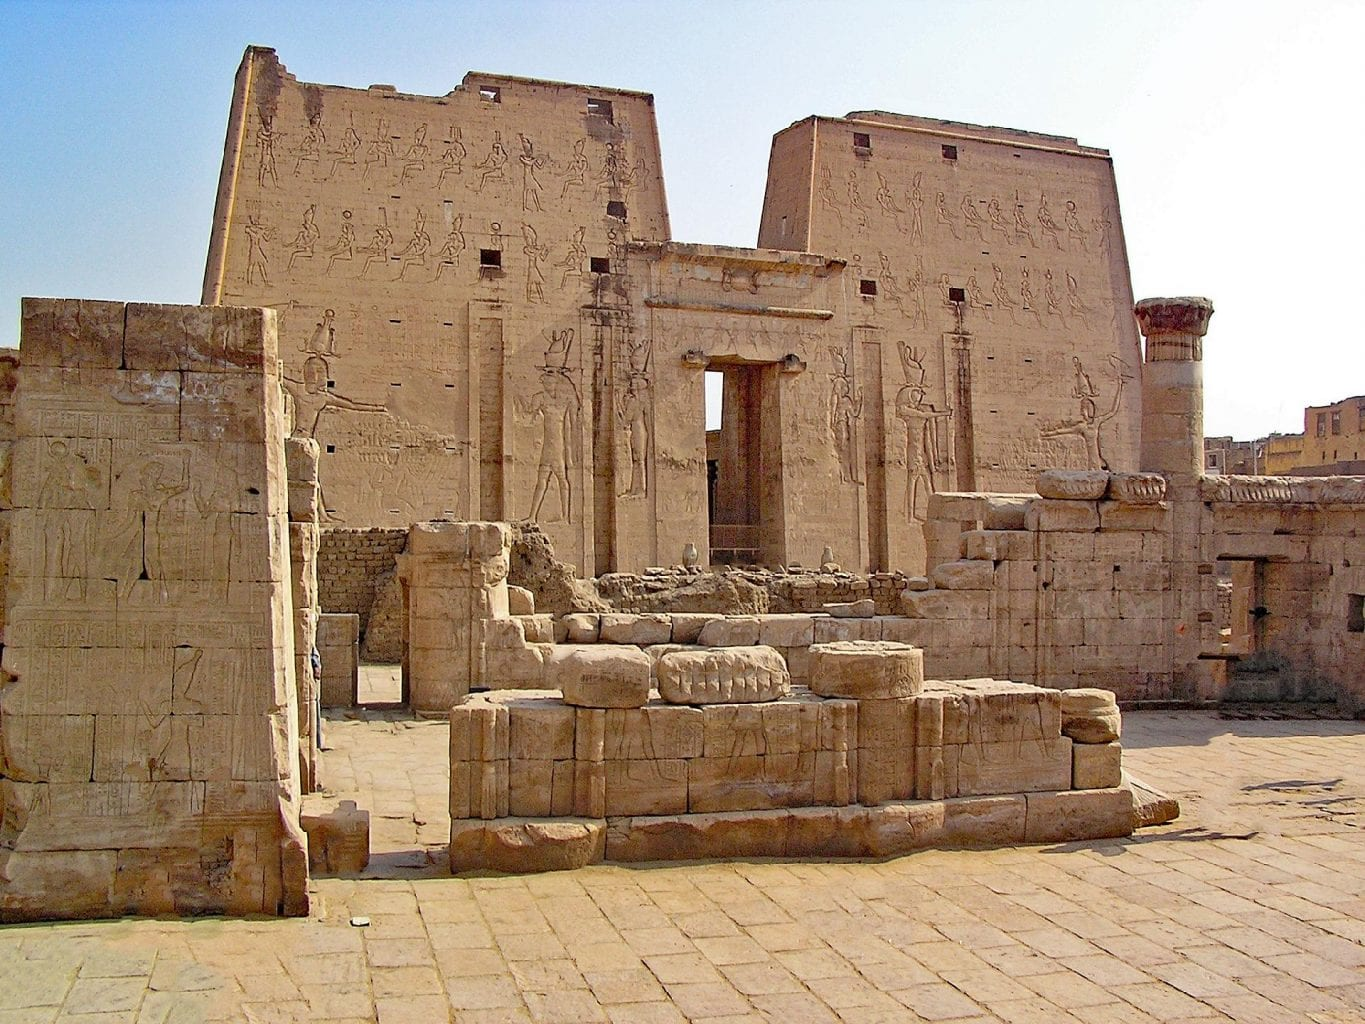 One of the most fascinating ancient Egyptian megastructures - the Temple of Edfu. Credit: Jumpstory